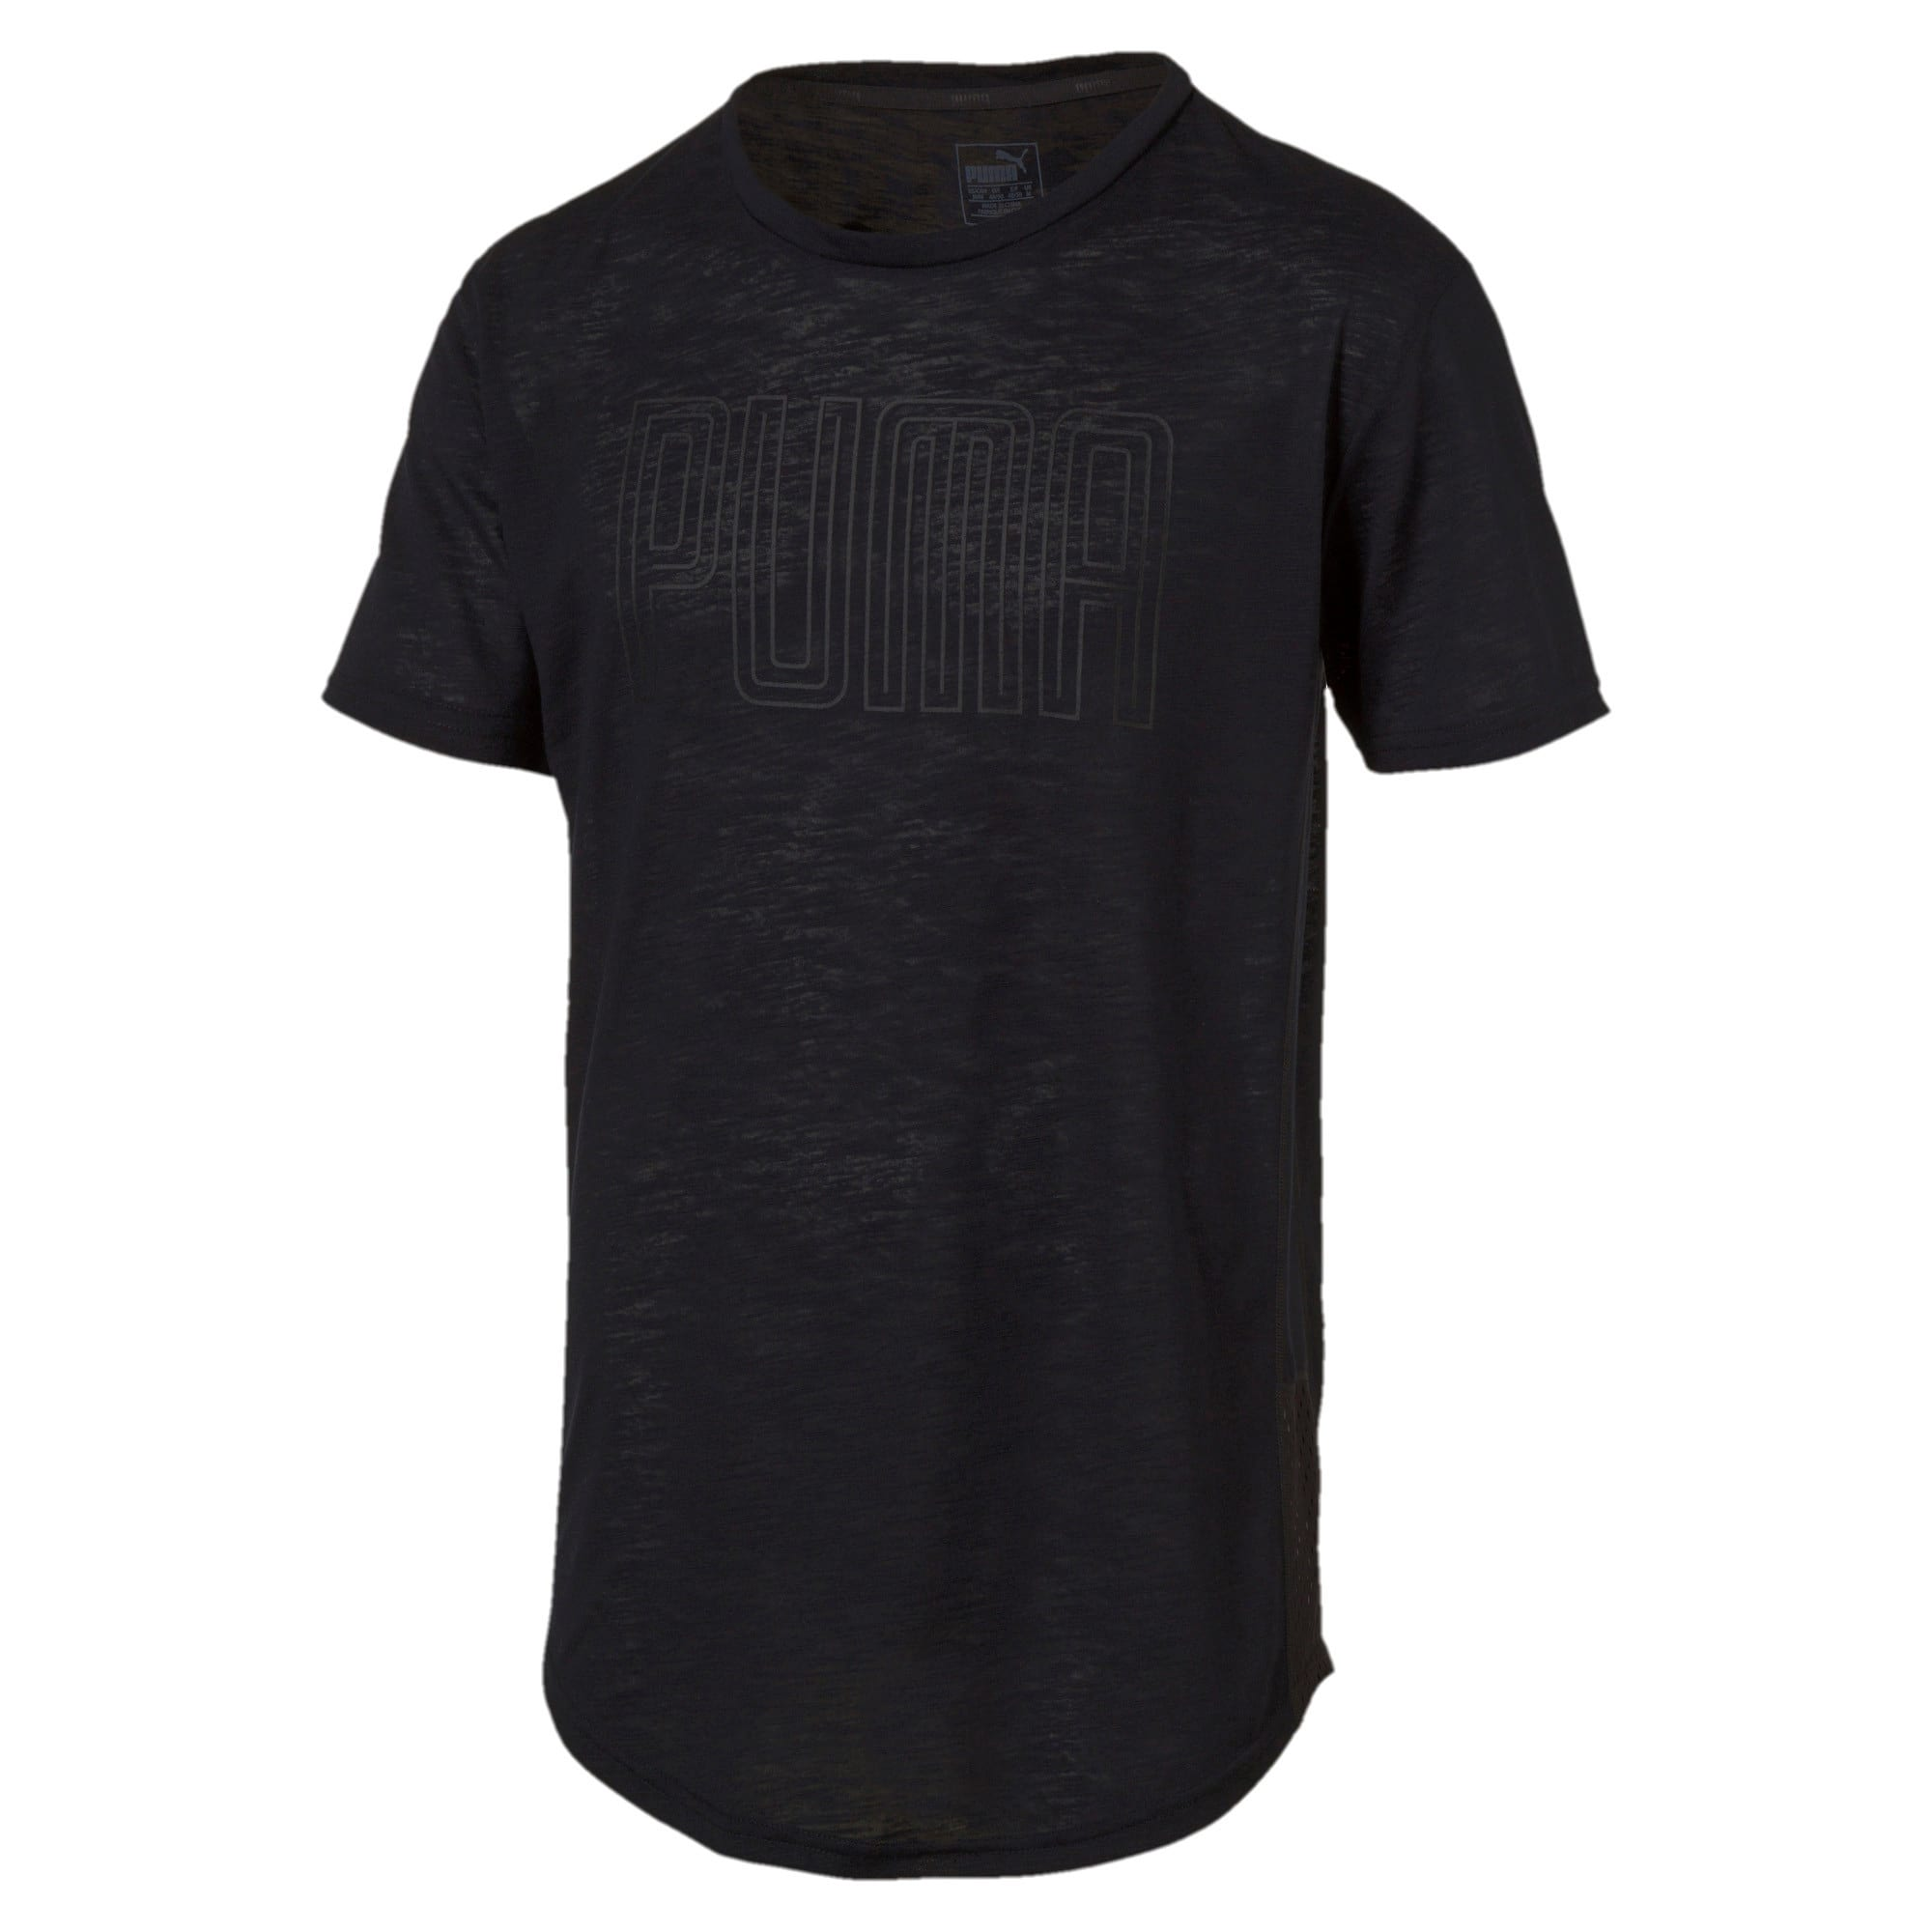 Thumbnail 3 of Active Training Men's Dri-Release® Novelty Graphic T-Shirt, Puma Black Heather, medium-IND